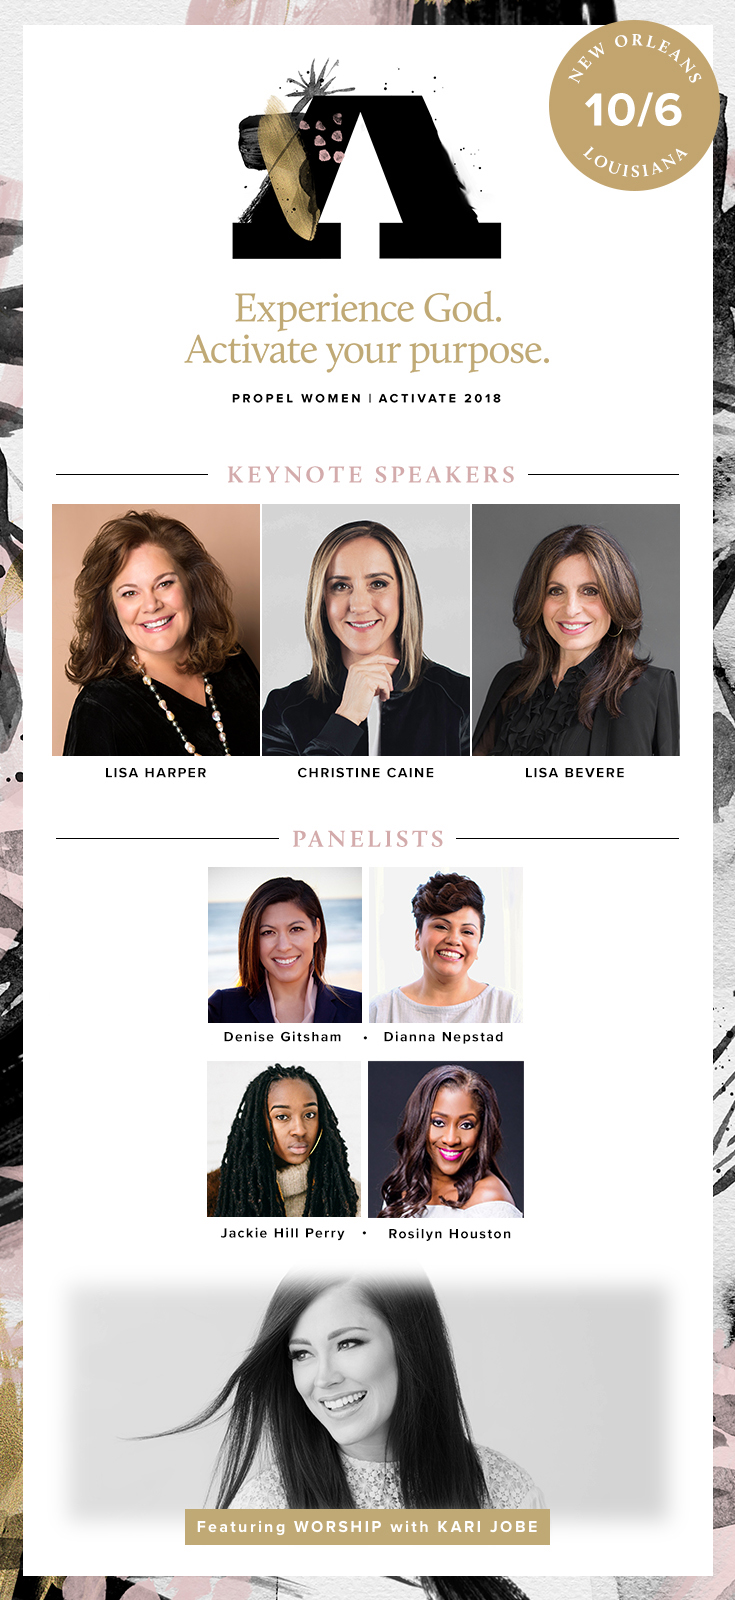 Propel Women Activate 2018